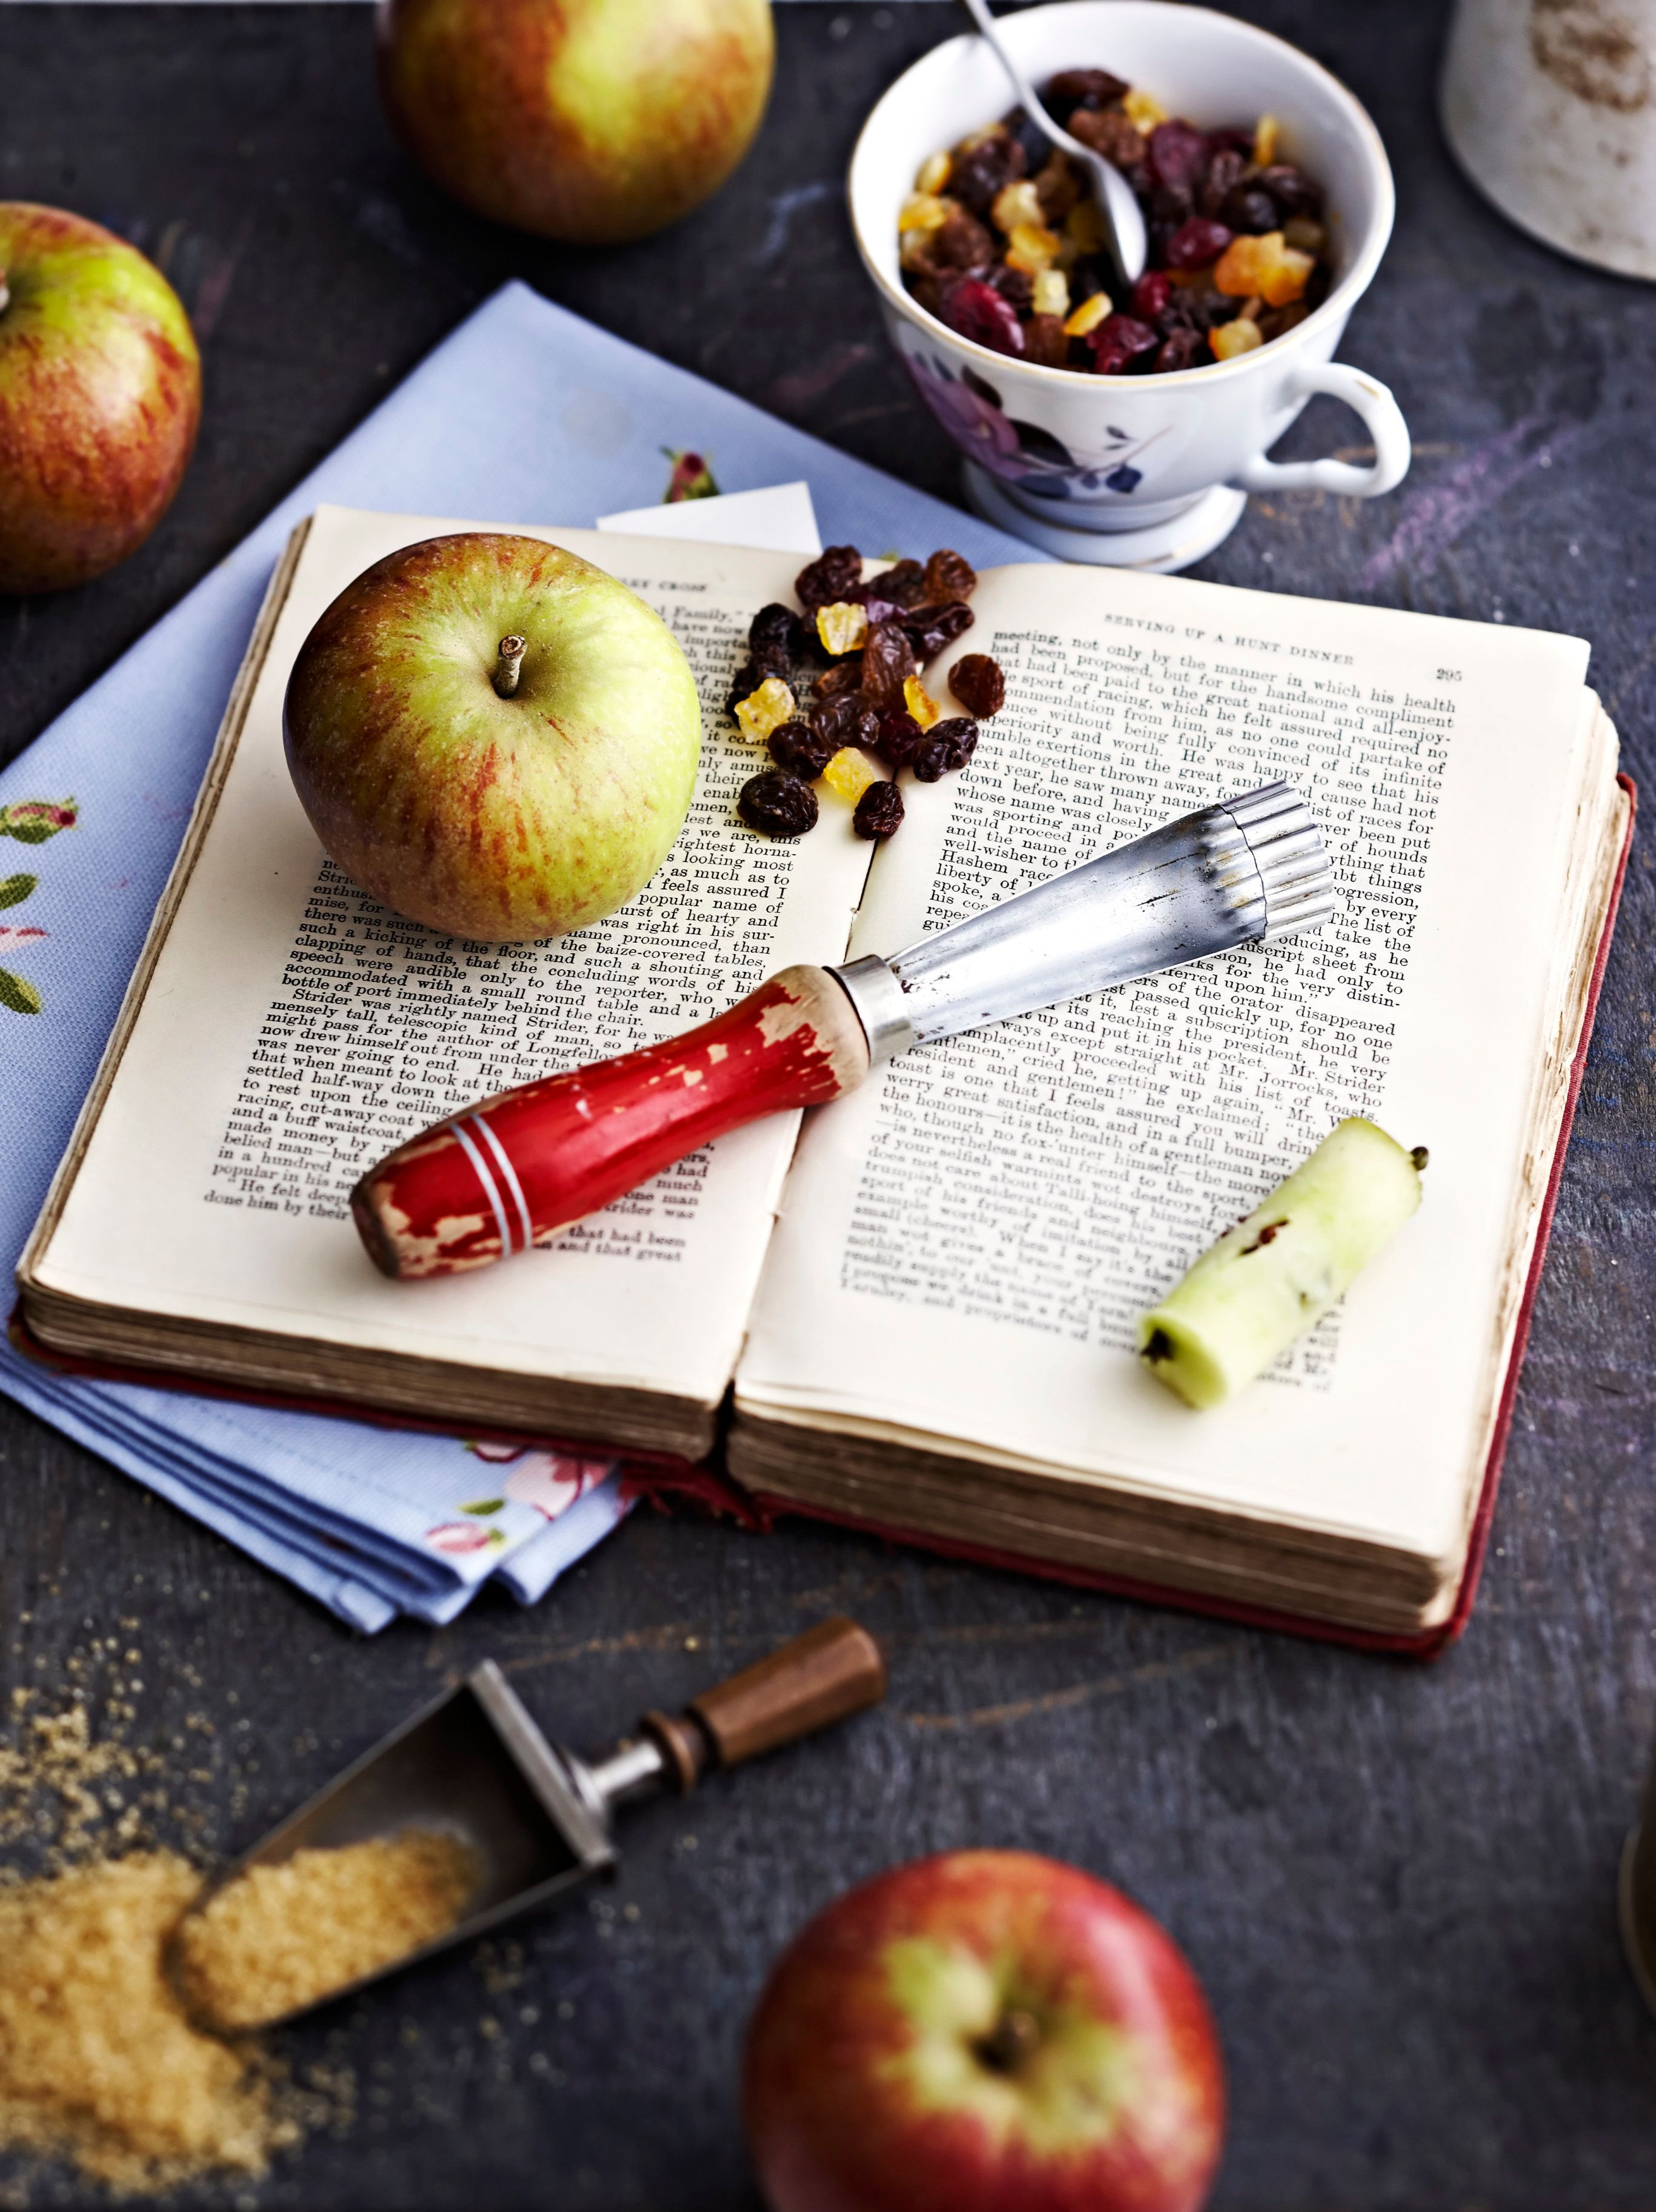 Cook book with ingredients for baked apples